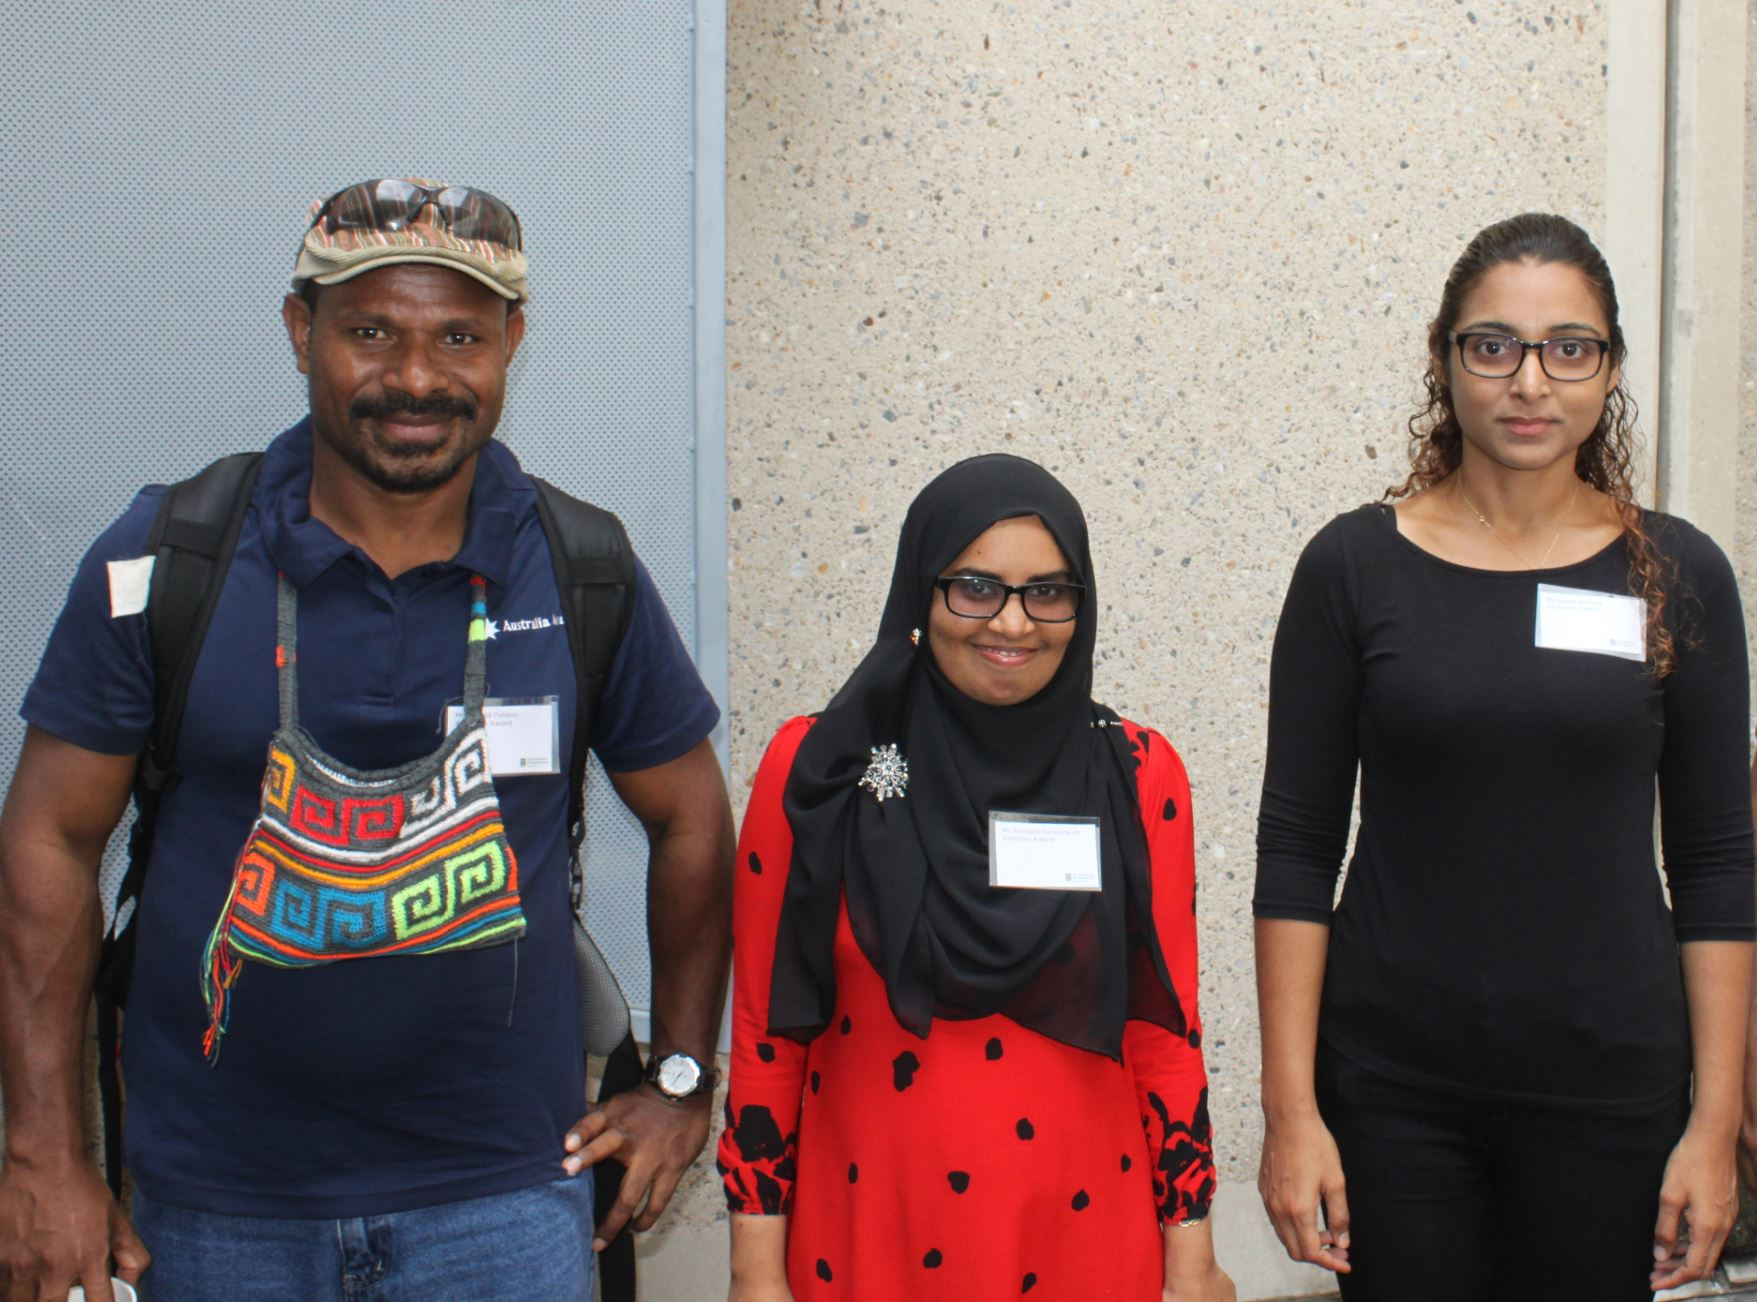 Arnold Patiken, Aminath Sunooha Ali and Sajida Ahmed